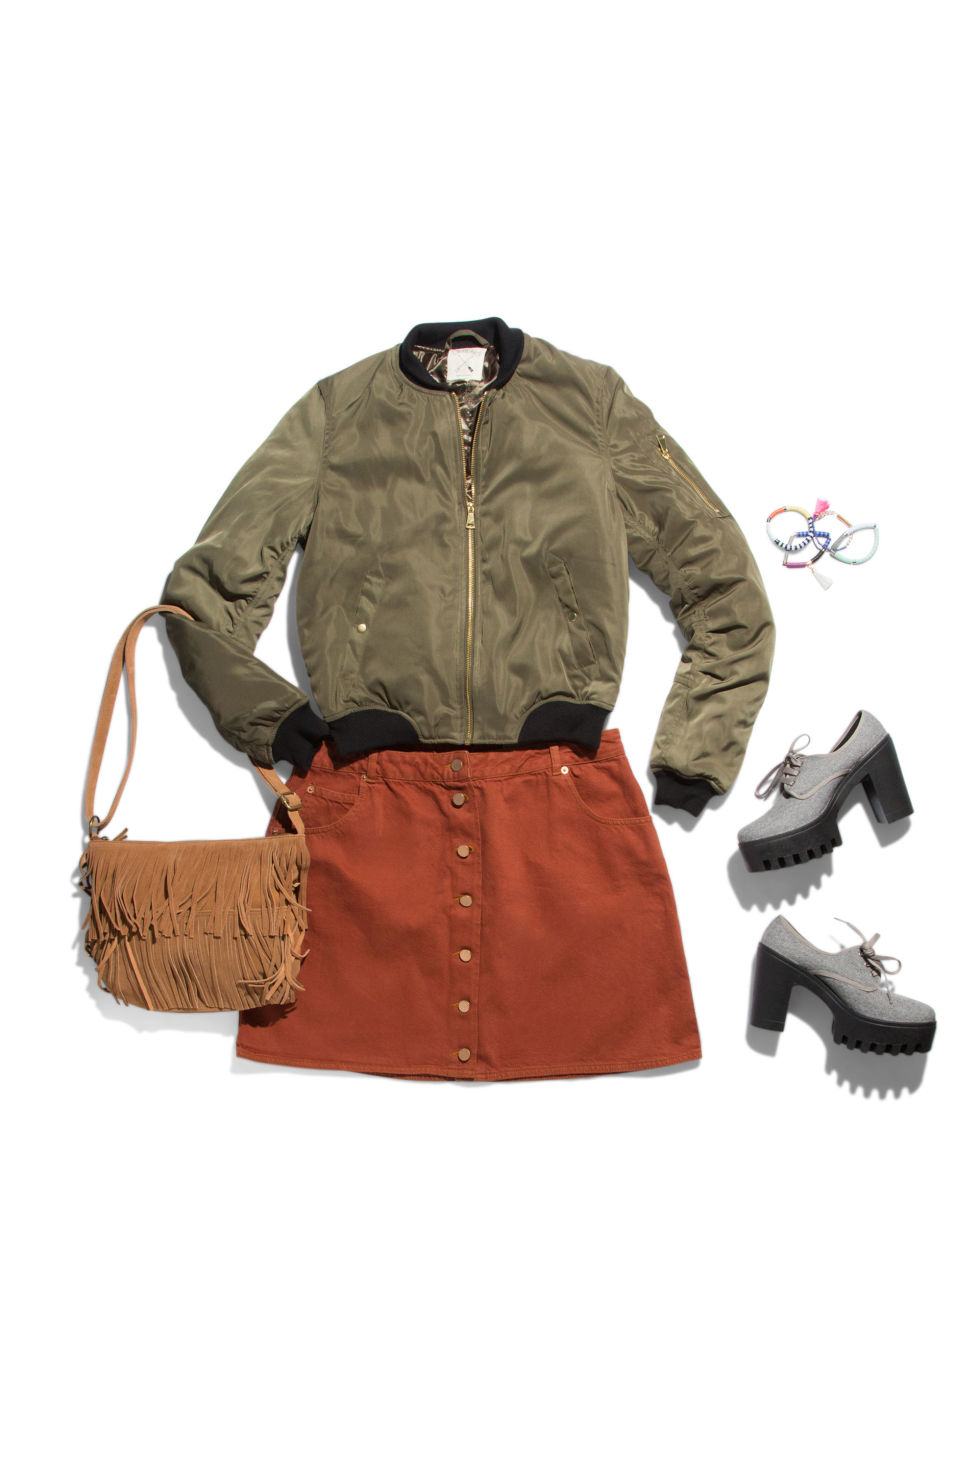 orange-mini-skirt-green-olive-jacket-bomber-cognac-bag-gray-shoe-brogues-howtowear-fashion-style-outfit-fall-winter-button-oxford-platform-lunch.jpg